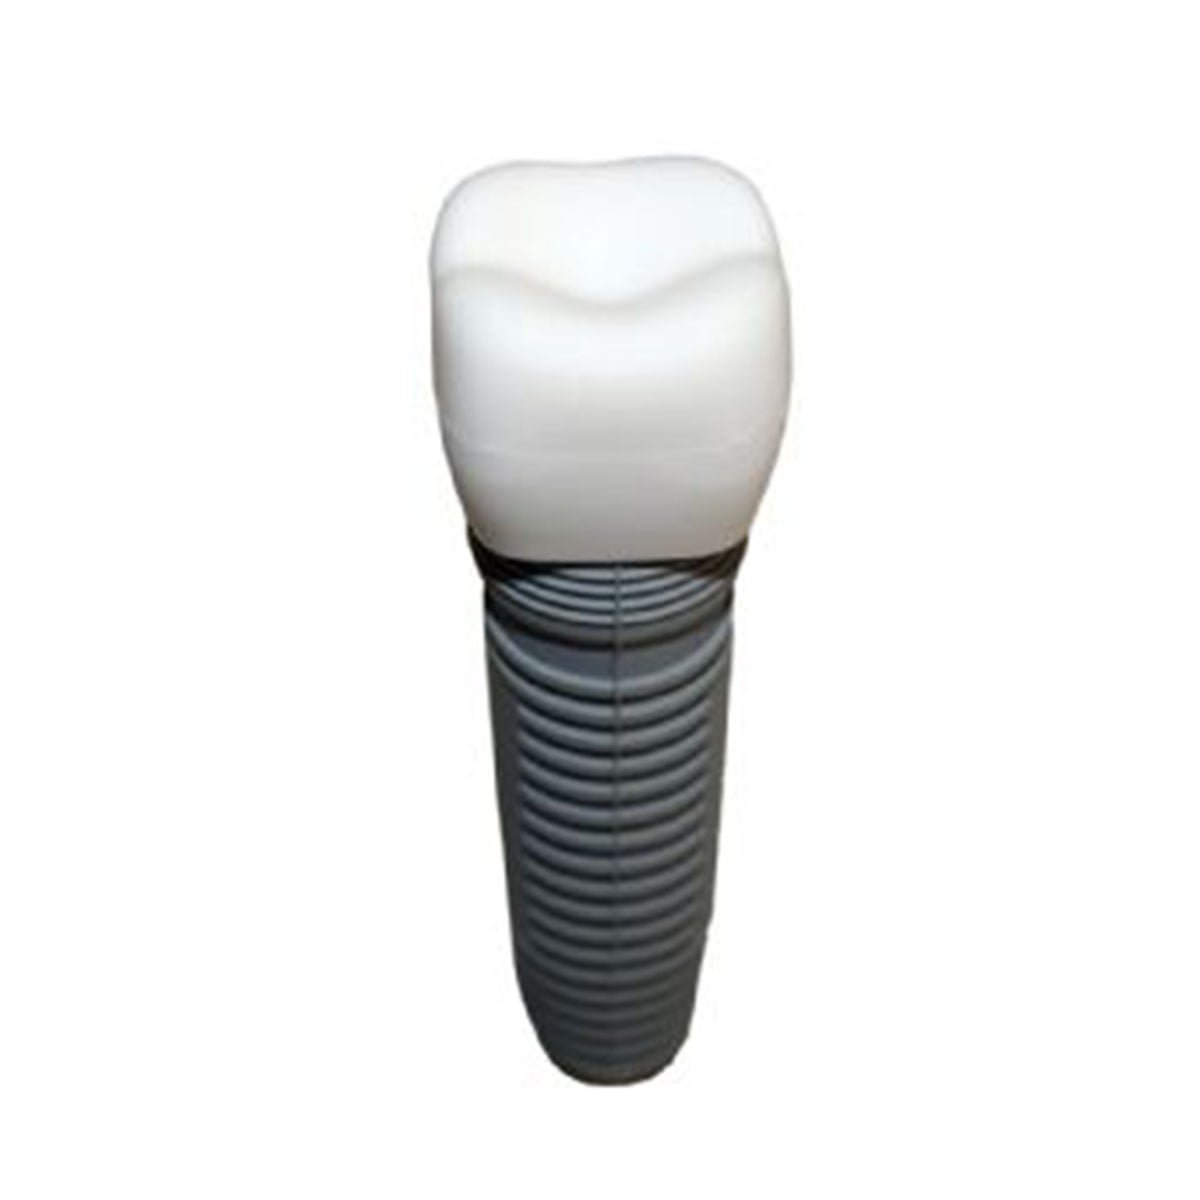 Tooth Implant PVC Flash Drive